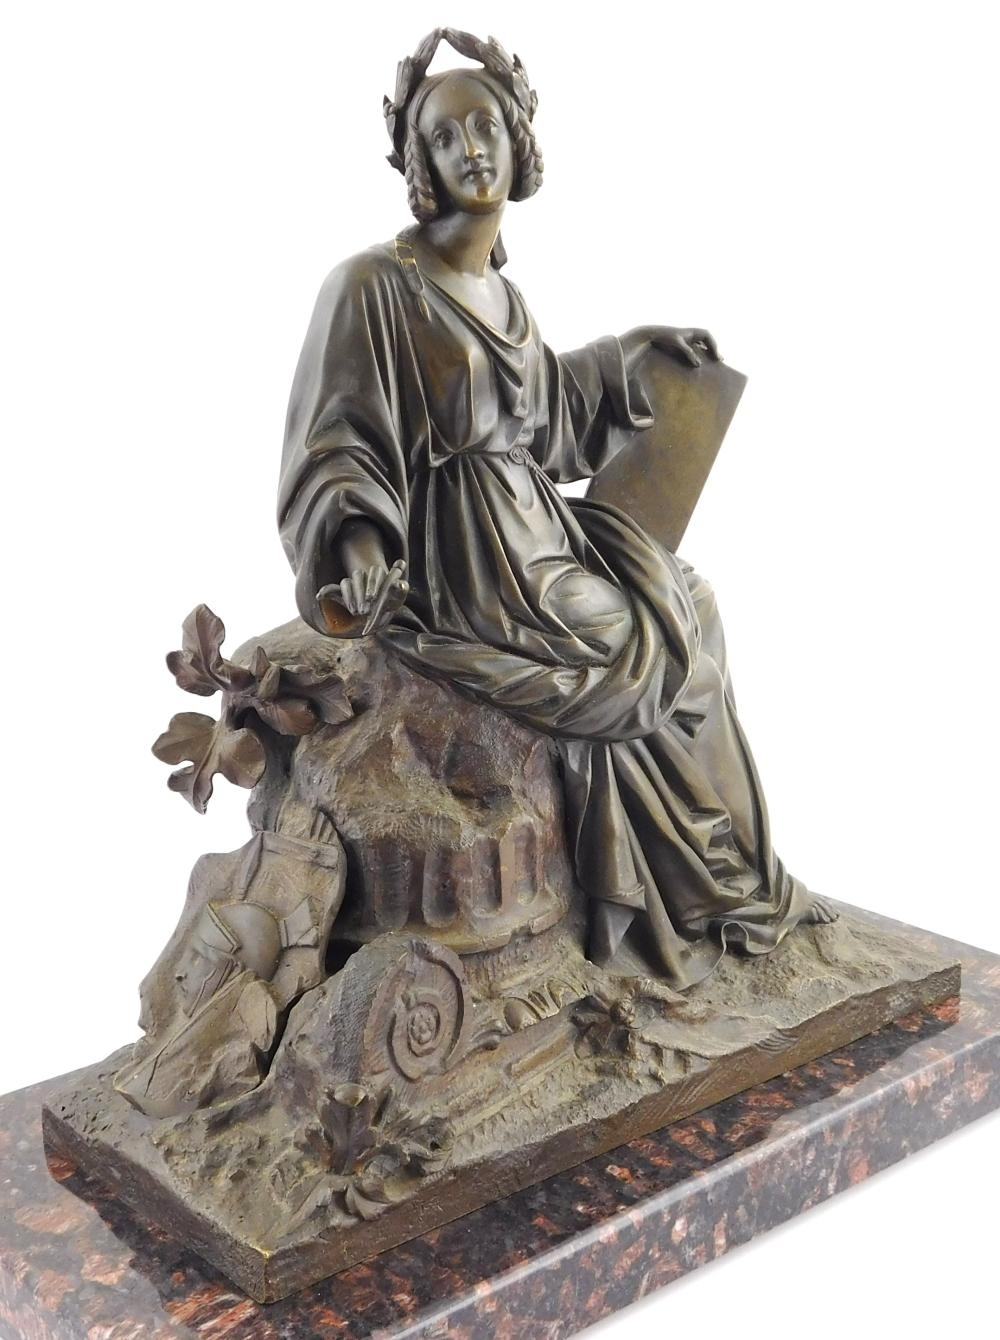 Victorian bronze sculpture of seated woman scribe on detached black and red marble base, bronze in classical robes with laurel wreat...